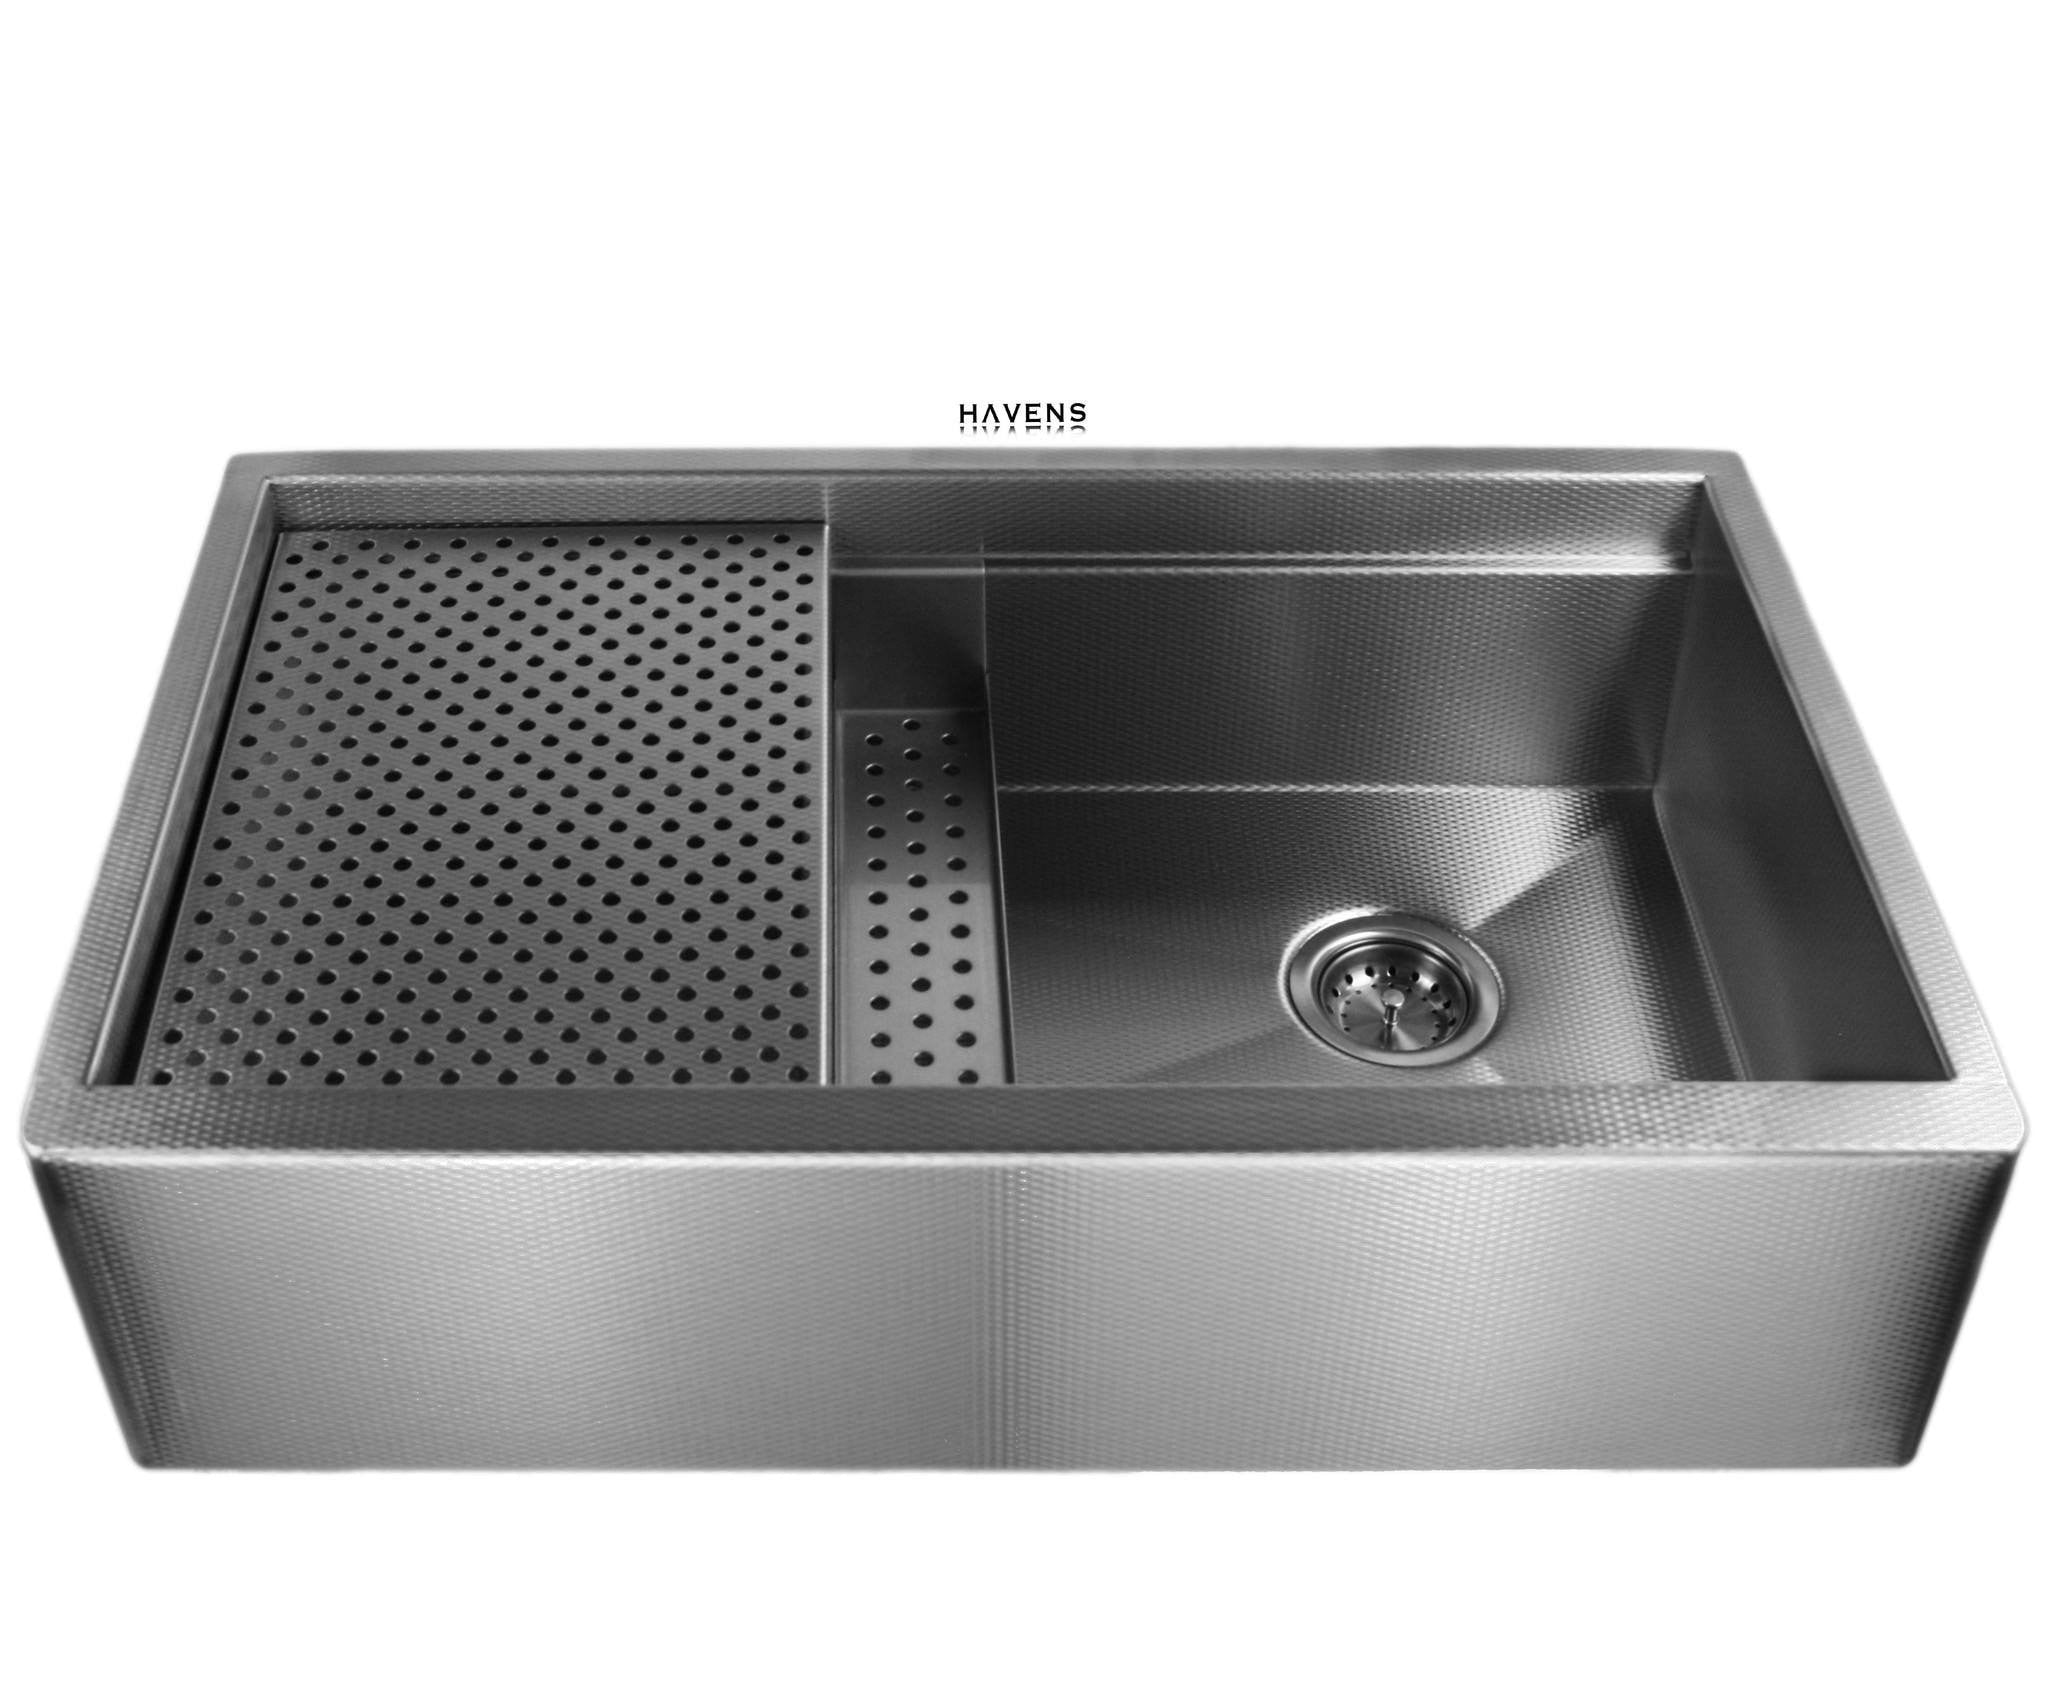 Legacy Stainless sink w/ grid drain & sponge caddy